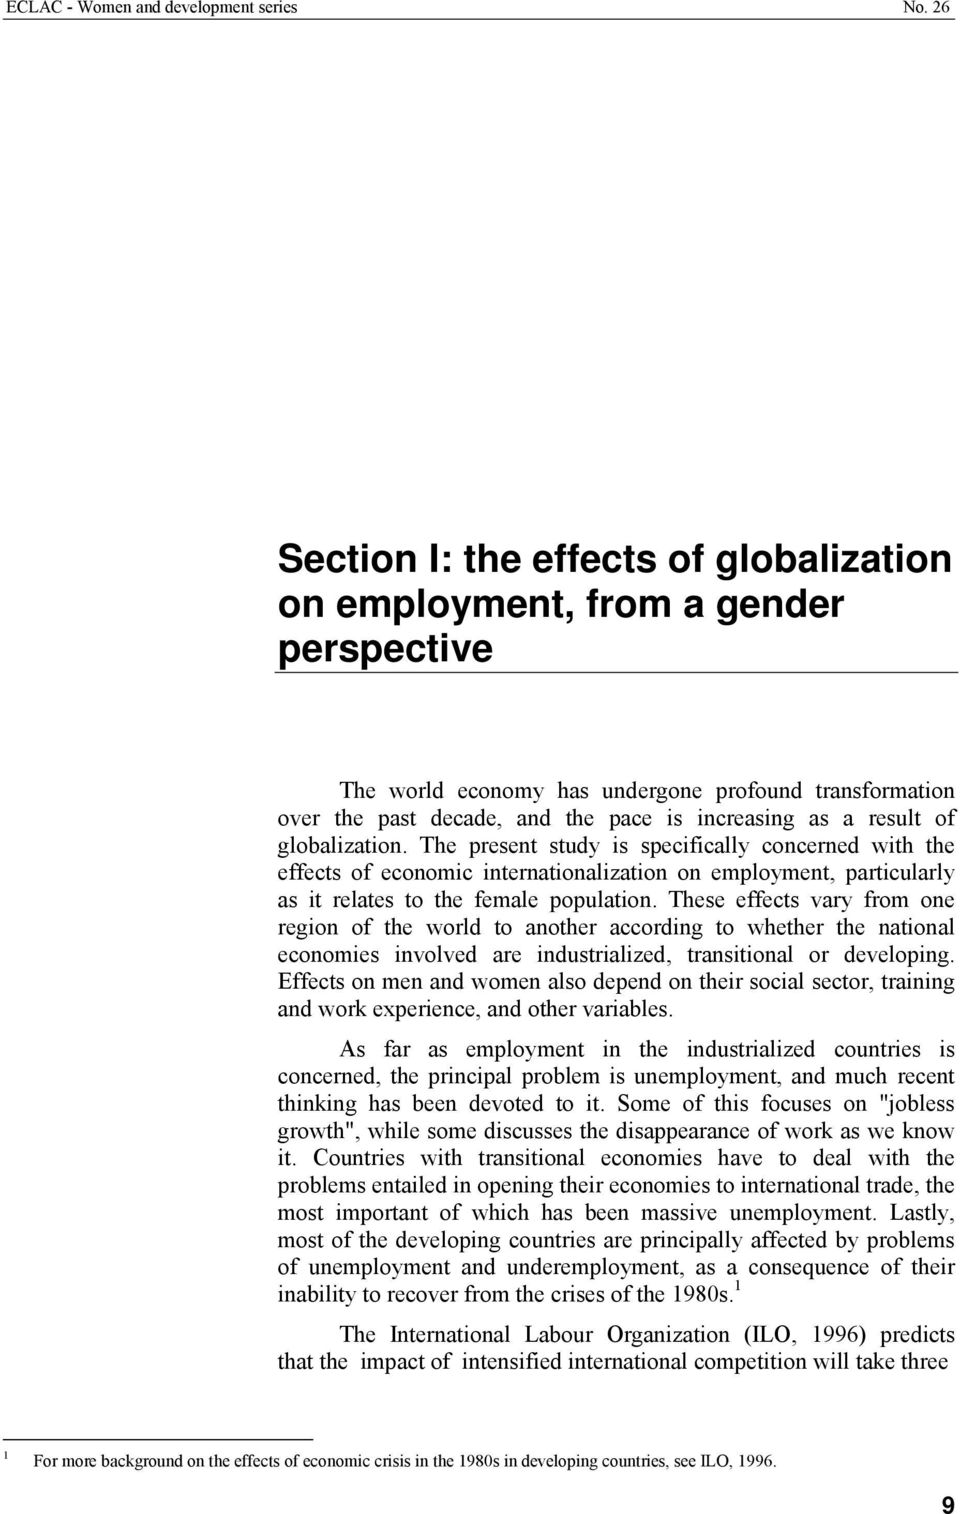 result of globalization. The present study is specifically concerned with the effects of economic internationalization on employment, particularly as it relates to the female population.